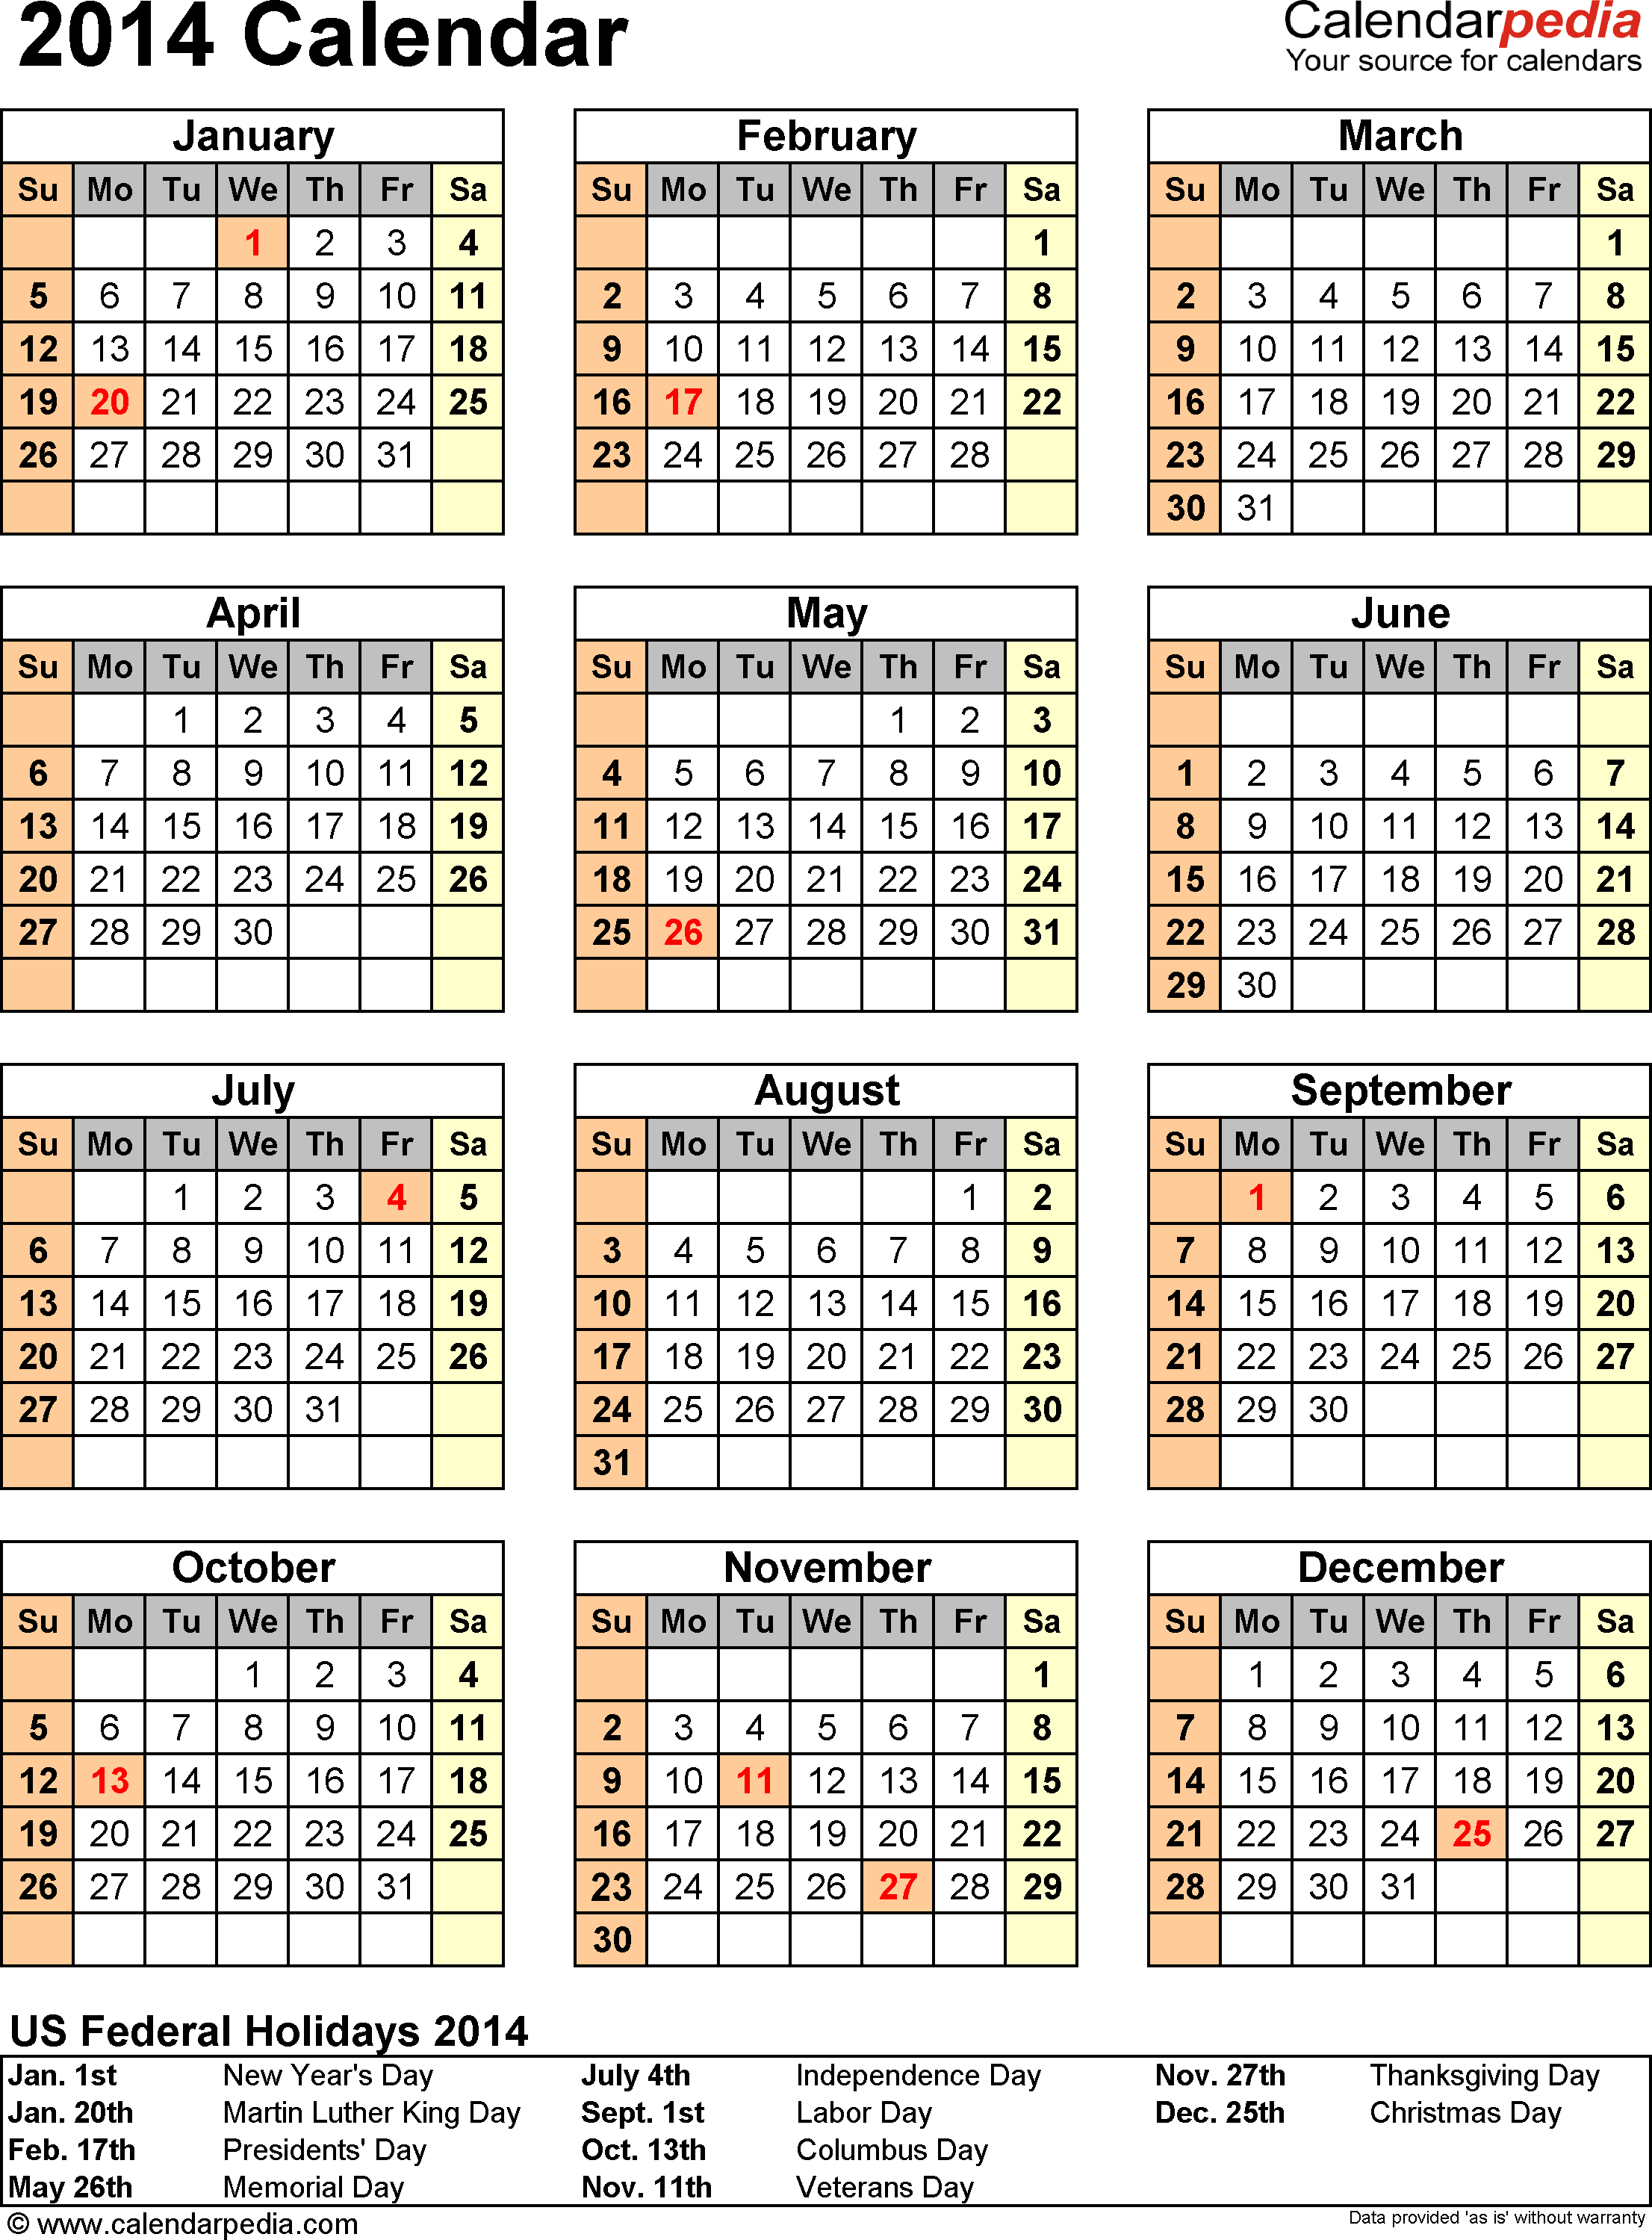 Download Excel template for 2014 calendar template 11: portrait orientation, 1 page, with US federal holidays 2014, paper format: US letter